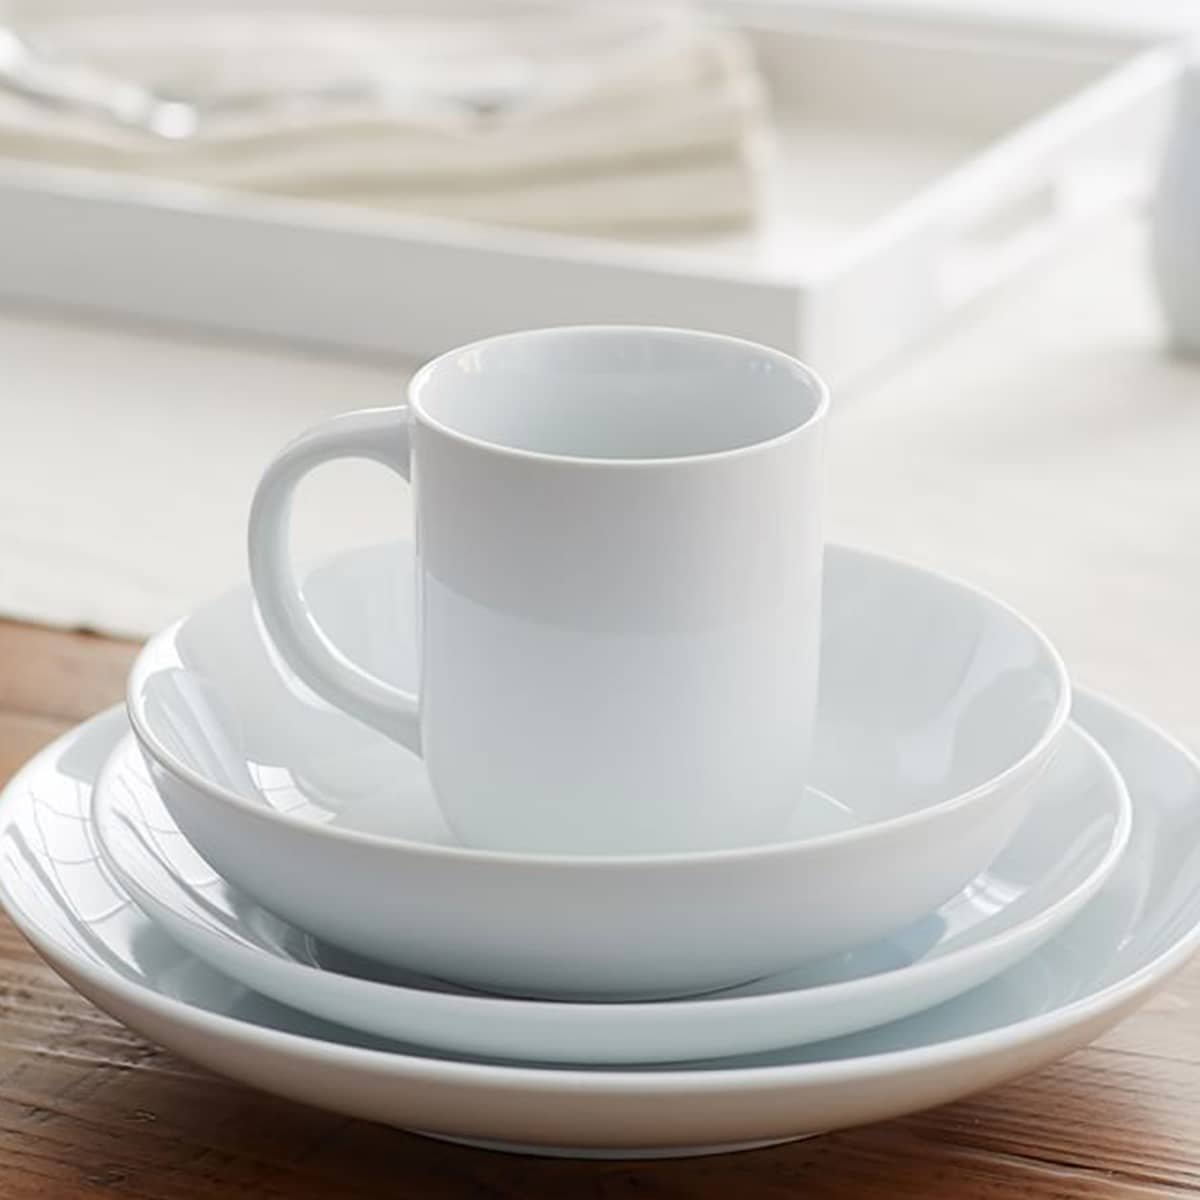 6 Dinnerware Sets That Will Outlast Your Design Whims: gallery image 2